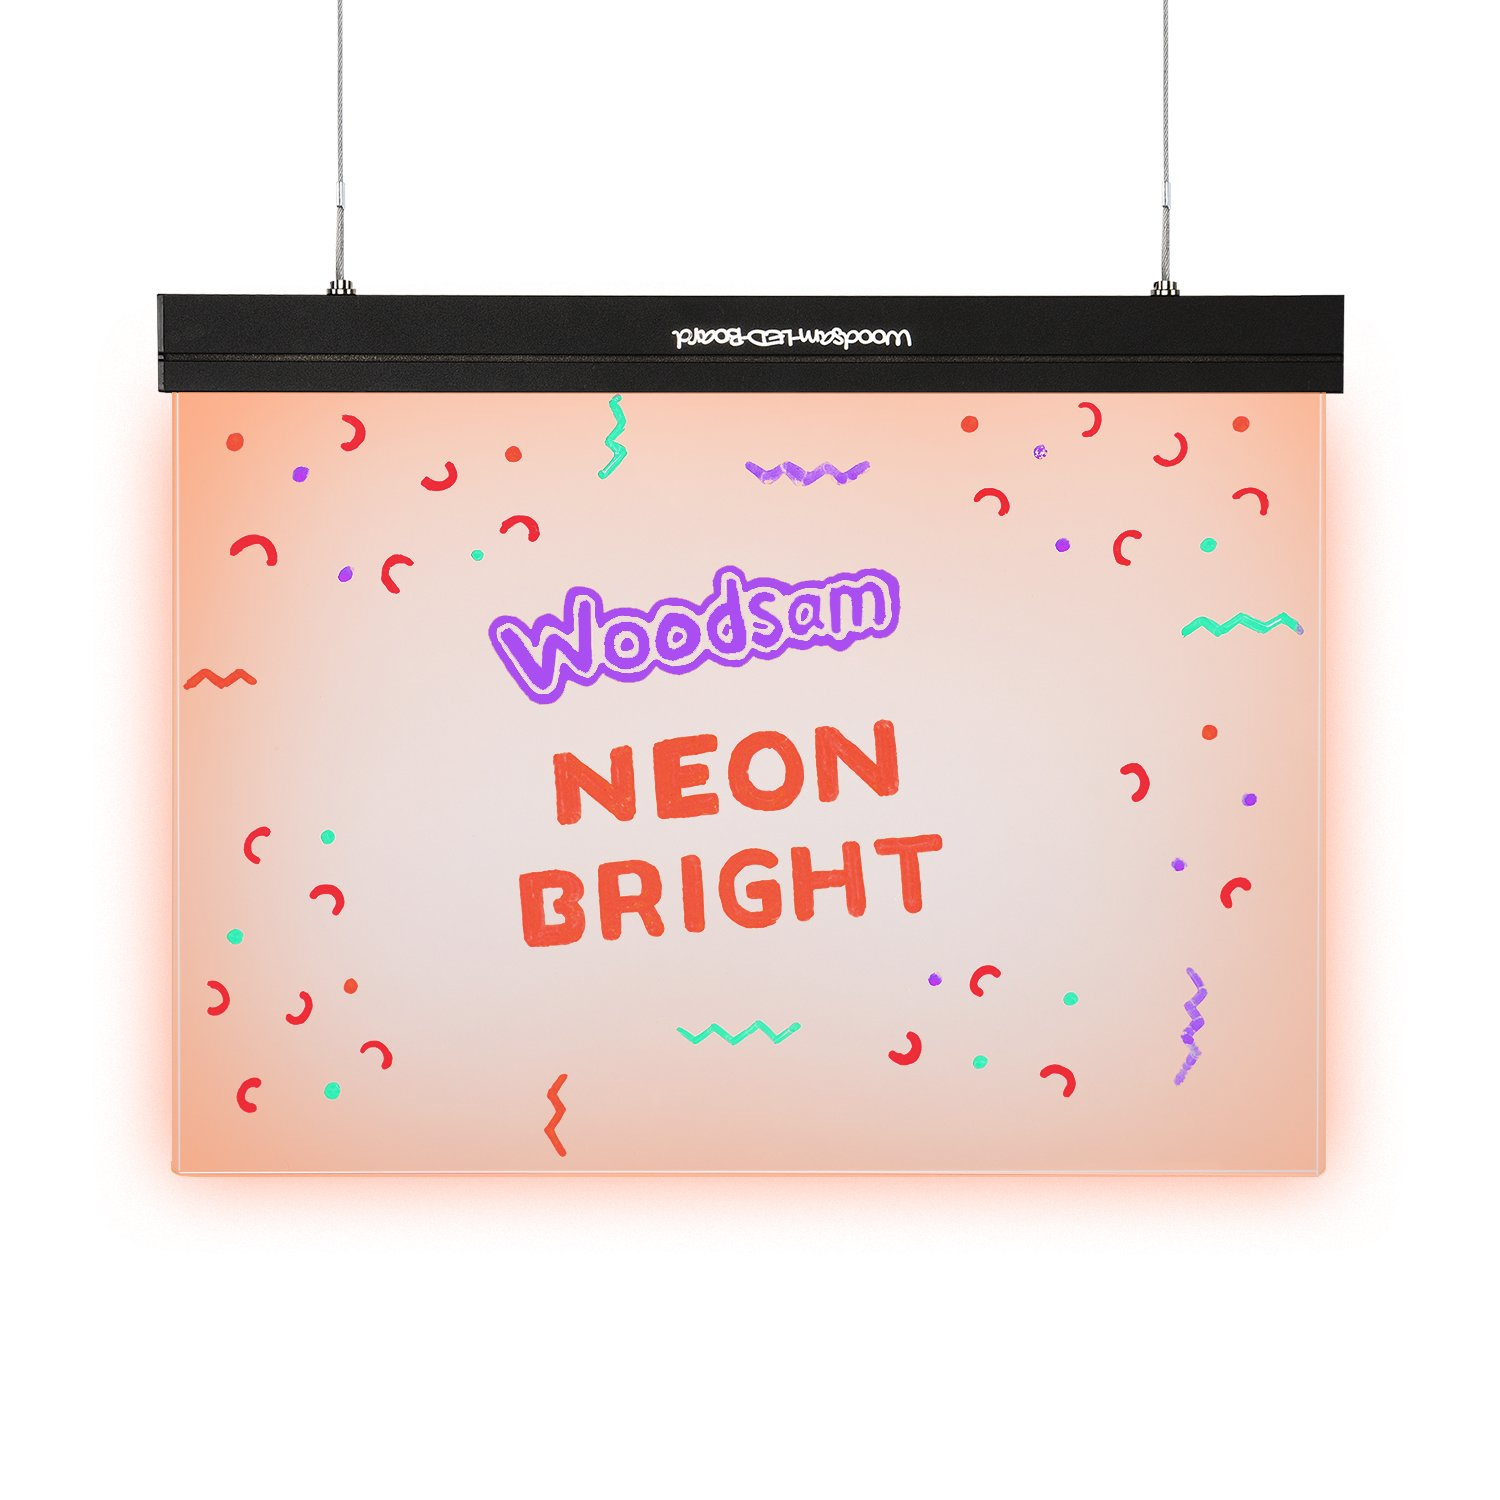 Woodsam LED Writing Drawing Board - 16'' x 12'' Illuminated Erasable and Non Porous Clear Glass Surface with 2 Fluorescent Liquid Chalk Markers - Great for Kids Home Business Office Holiday Gift